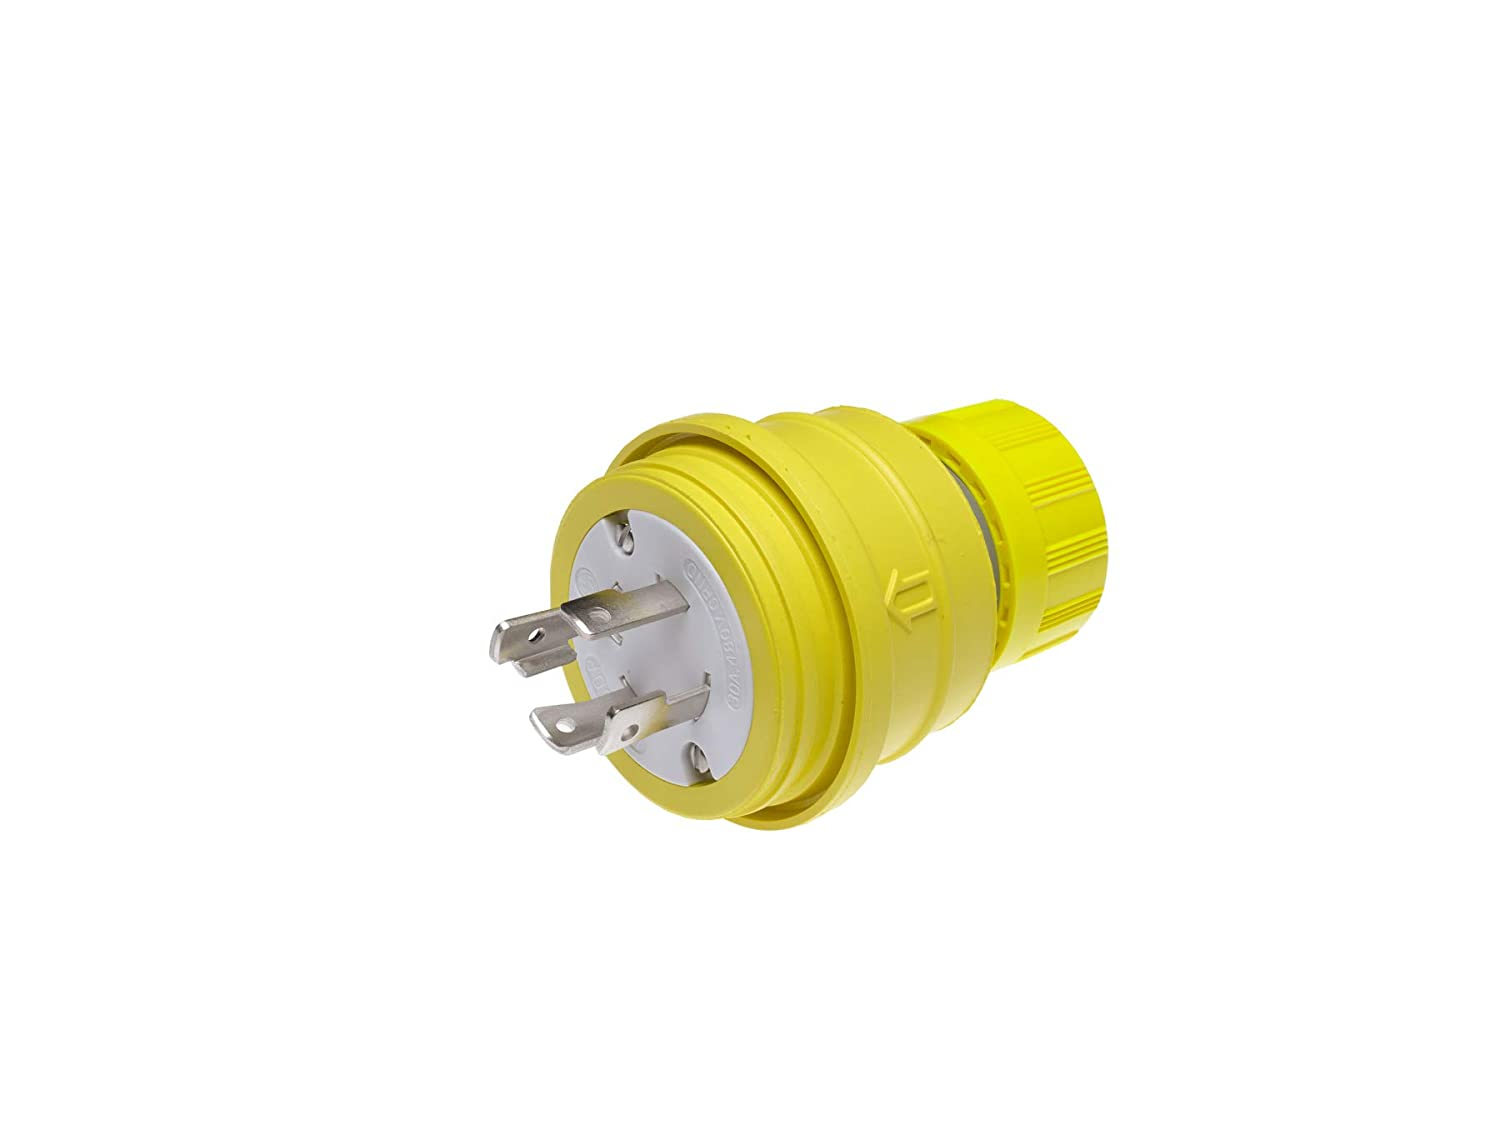 Woodhead 28W76 Watertite Wet Location Locking Blade Plug, 3-Phase, 4 Wires, 3 Poles, NEMA L16-30 Configuration, Yellow, 30A Current, 480V Voltage